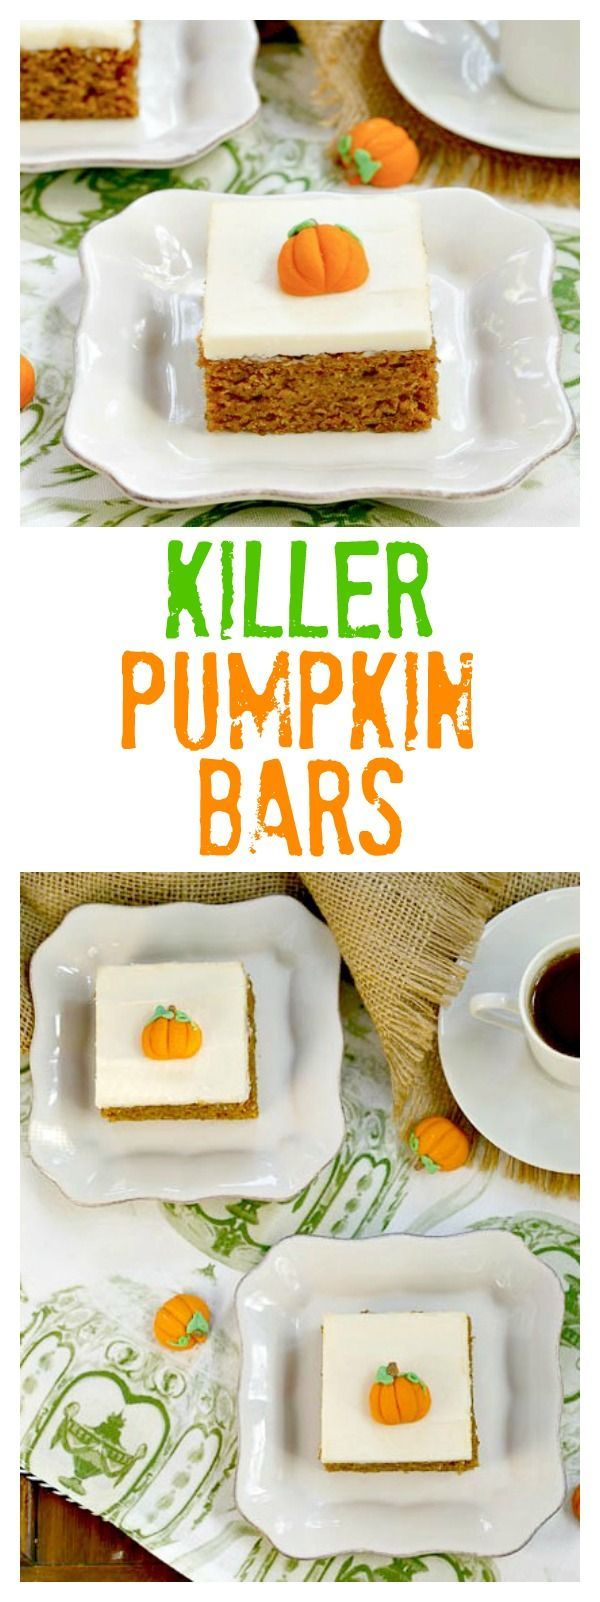 Pumpkin Bars with Cream Cheese Frosting | Pumpkin fans will go nuts for these heavenly bars! /lizzydo/